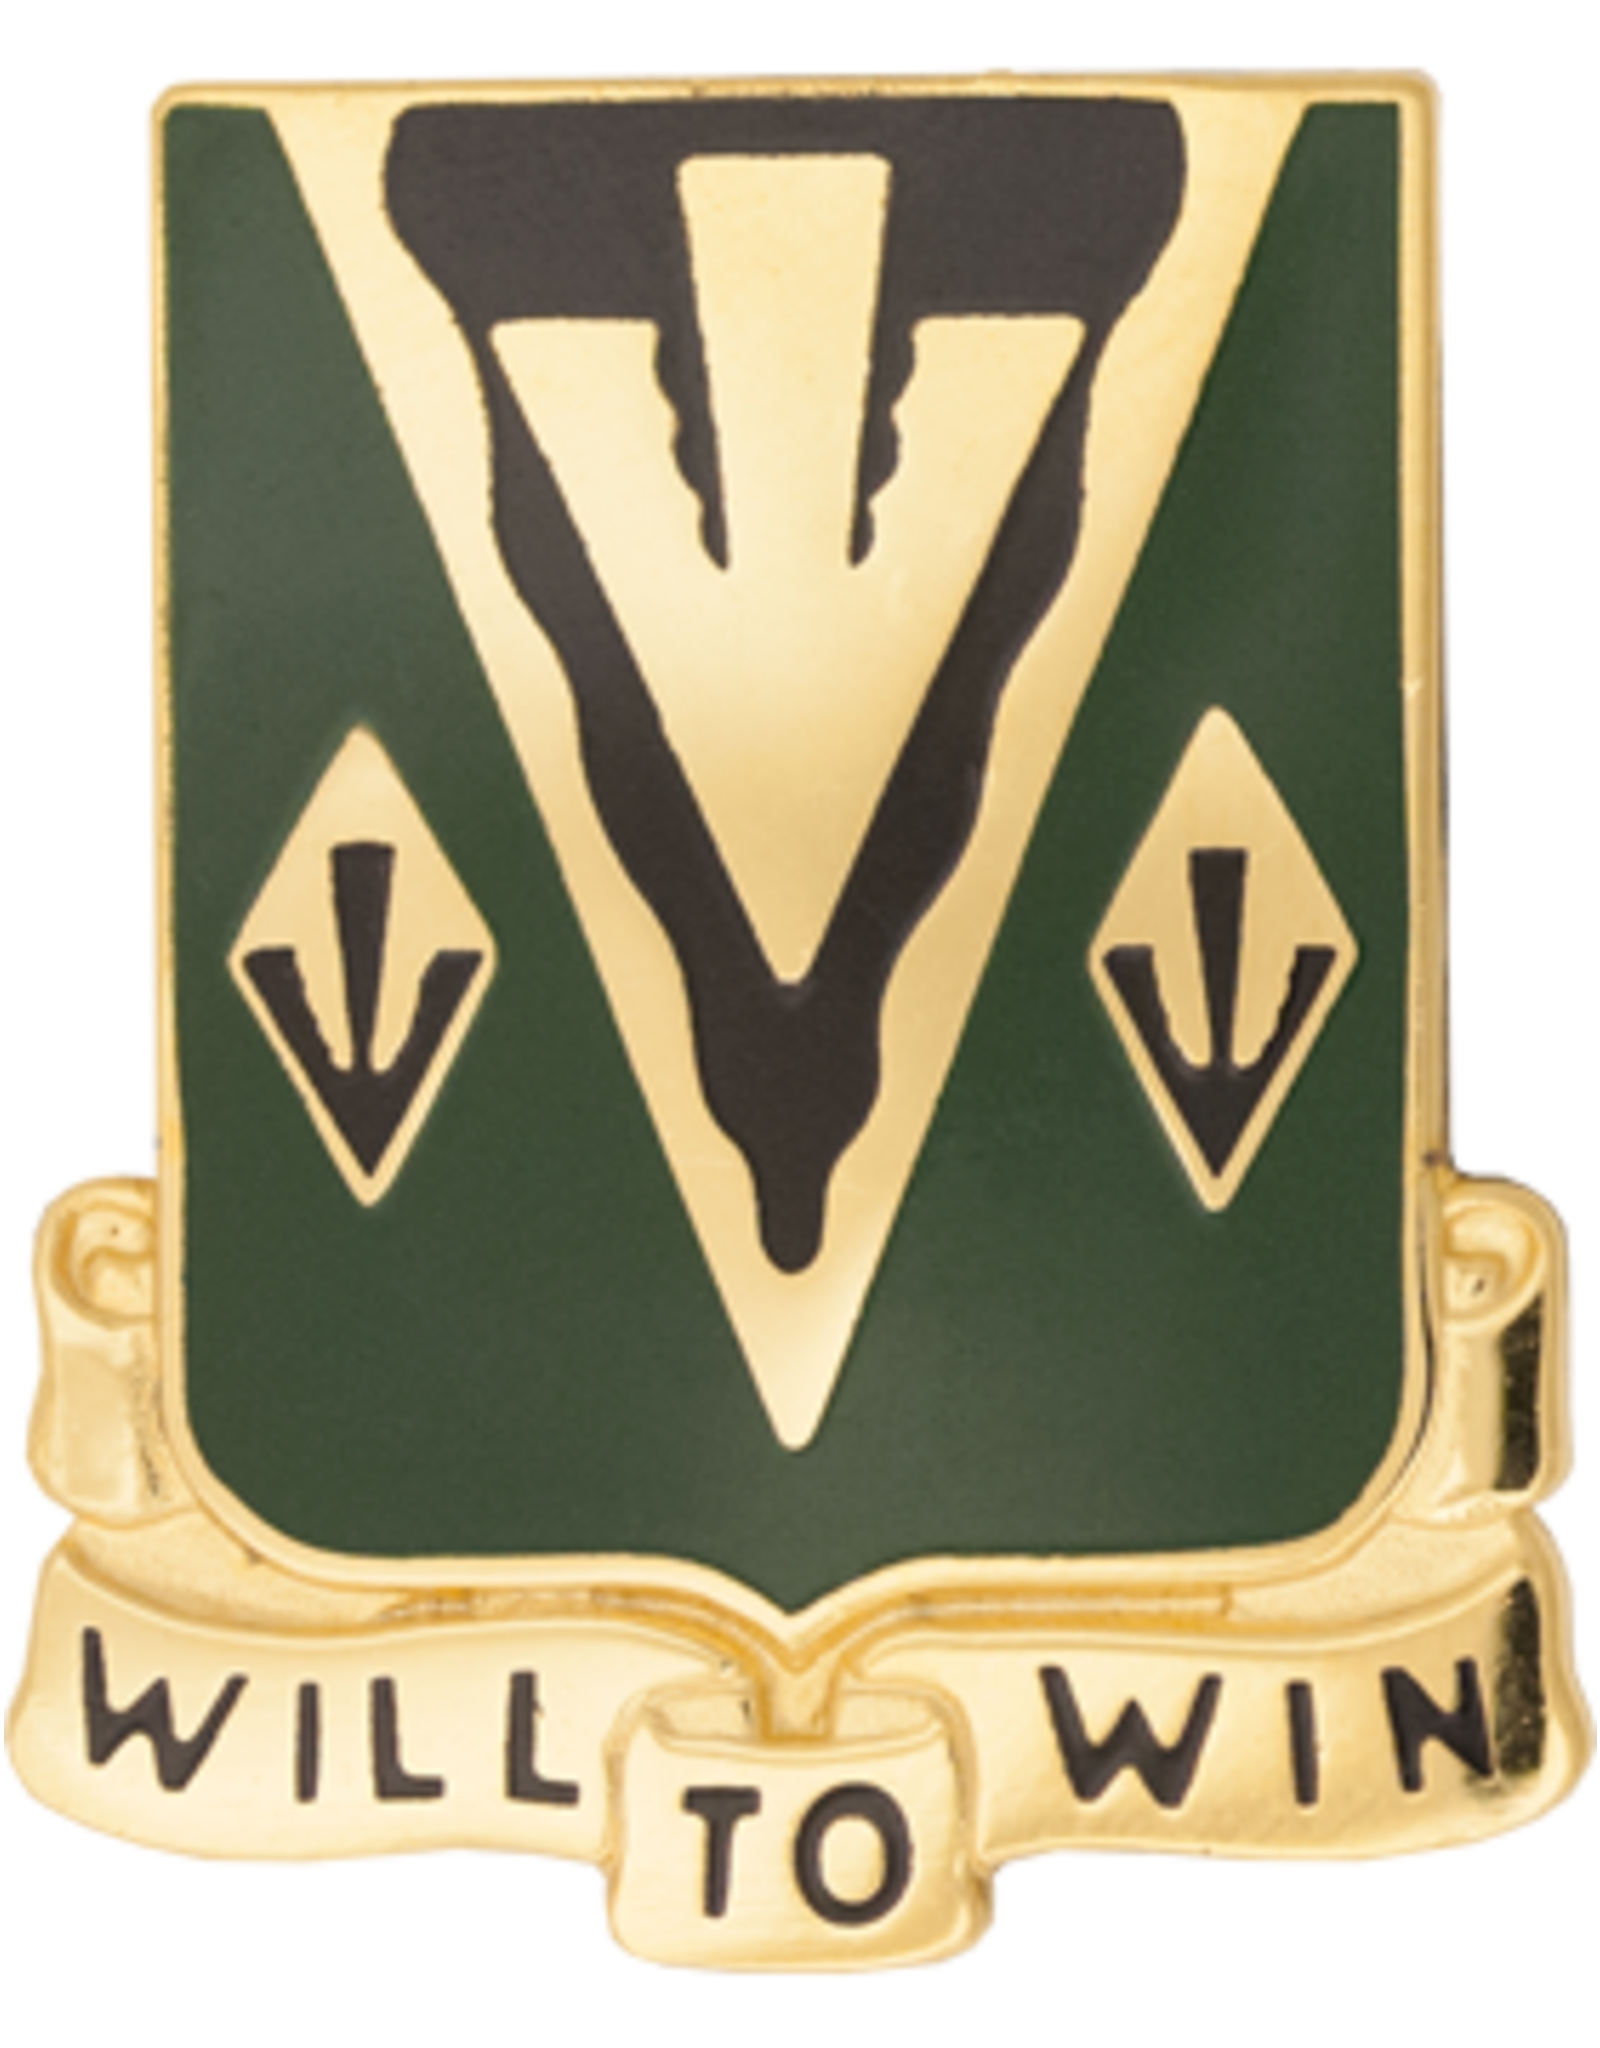 635th Armor Crest - Will To Win